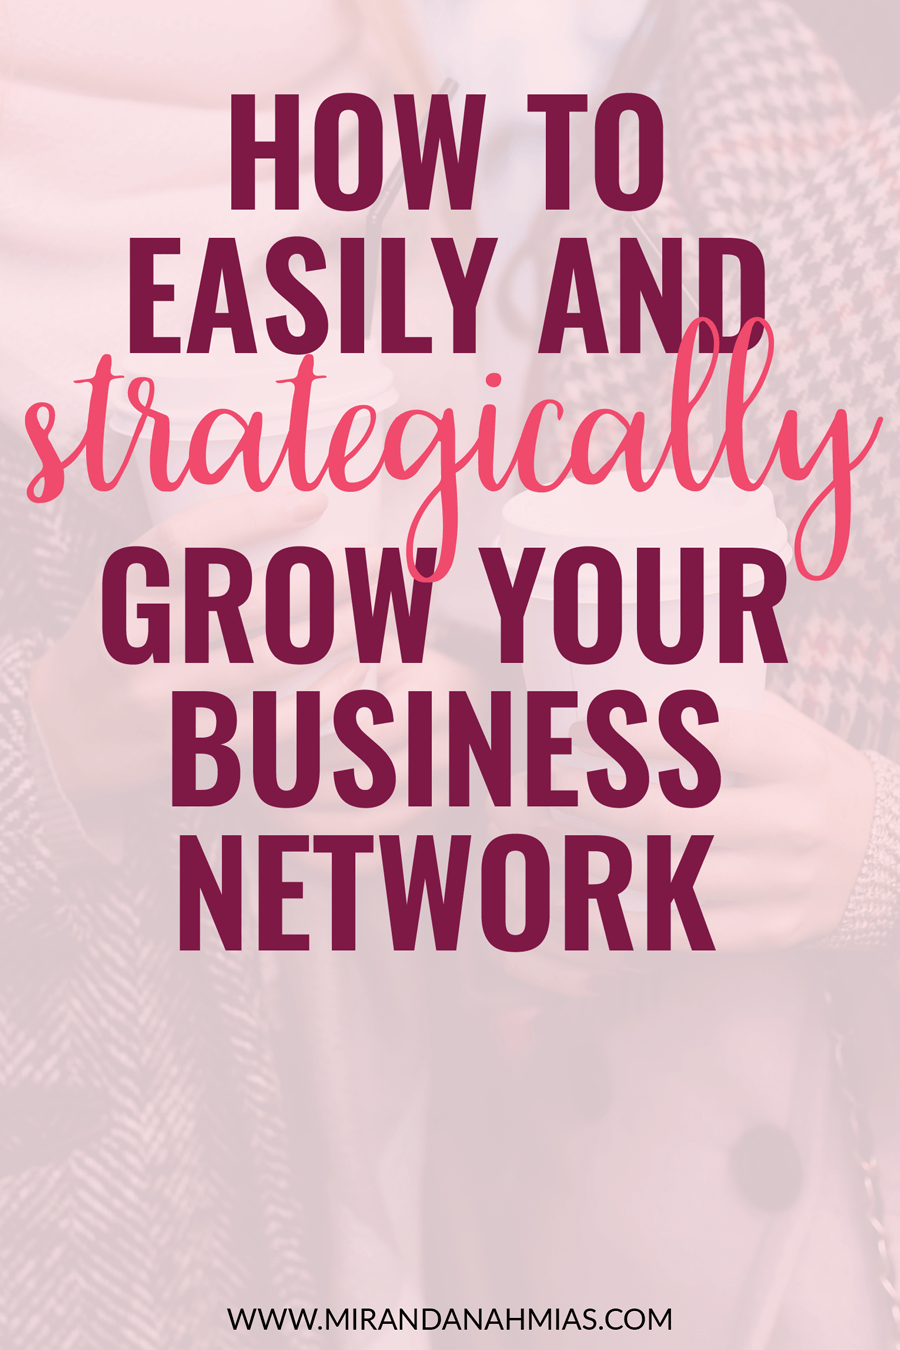 How to Easily and Strategically Grow Your Business Network. A guest post from Ardelia Lee // Miranda Nahmias